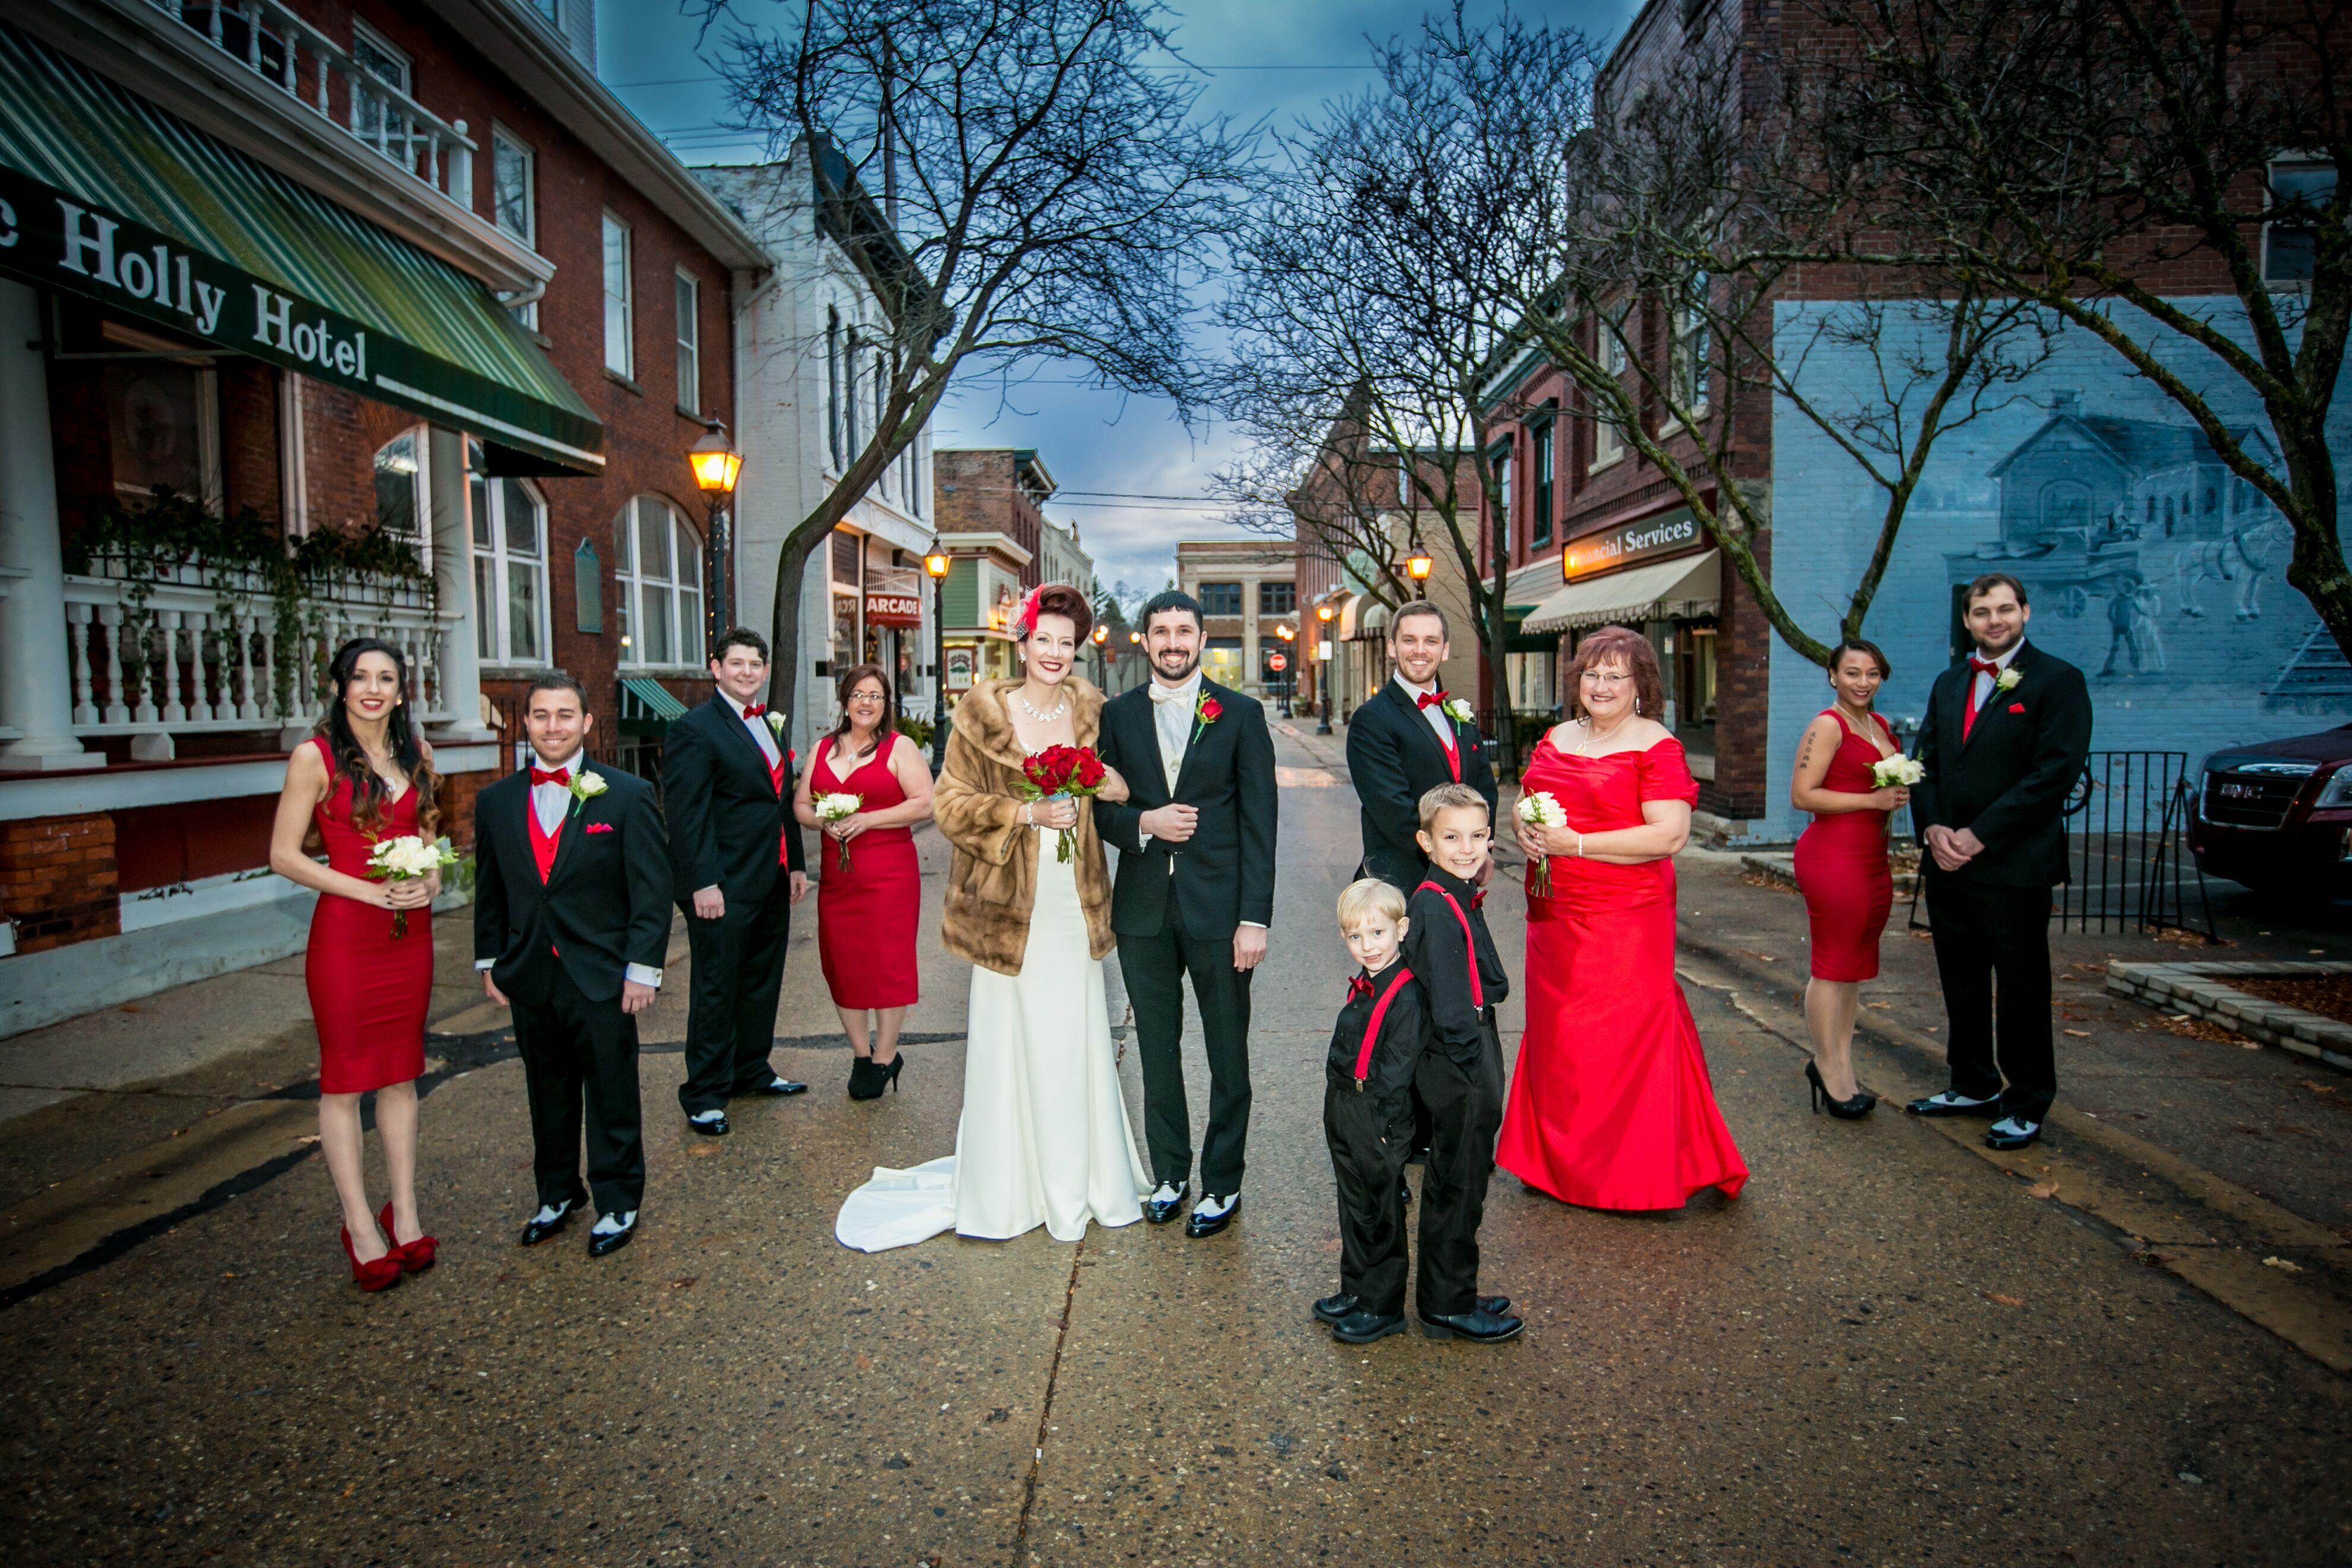 Vintage 1950s Black White And Red Wedding Party At Holly